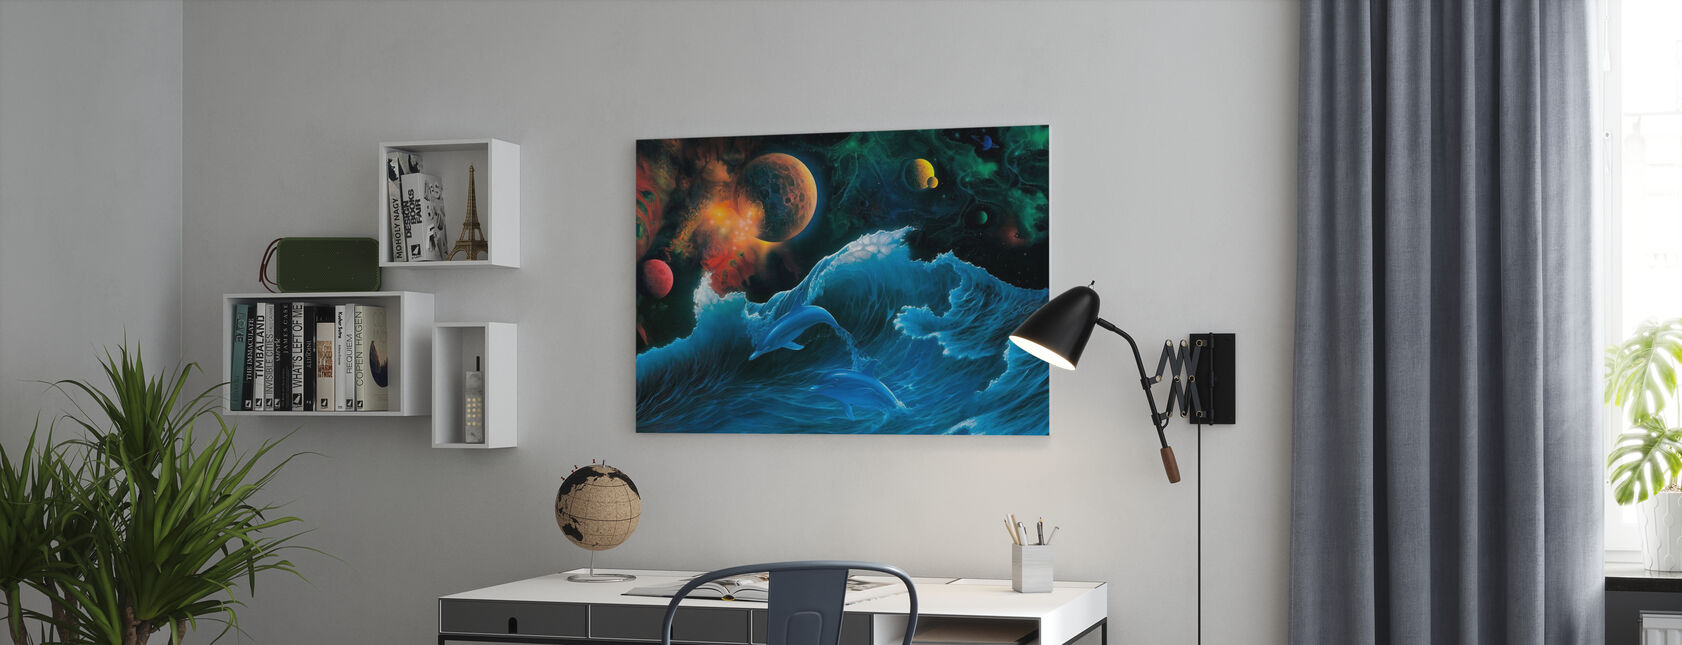 Voyager - Canvas print - Office